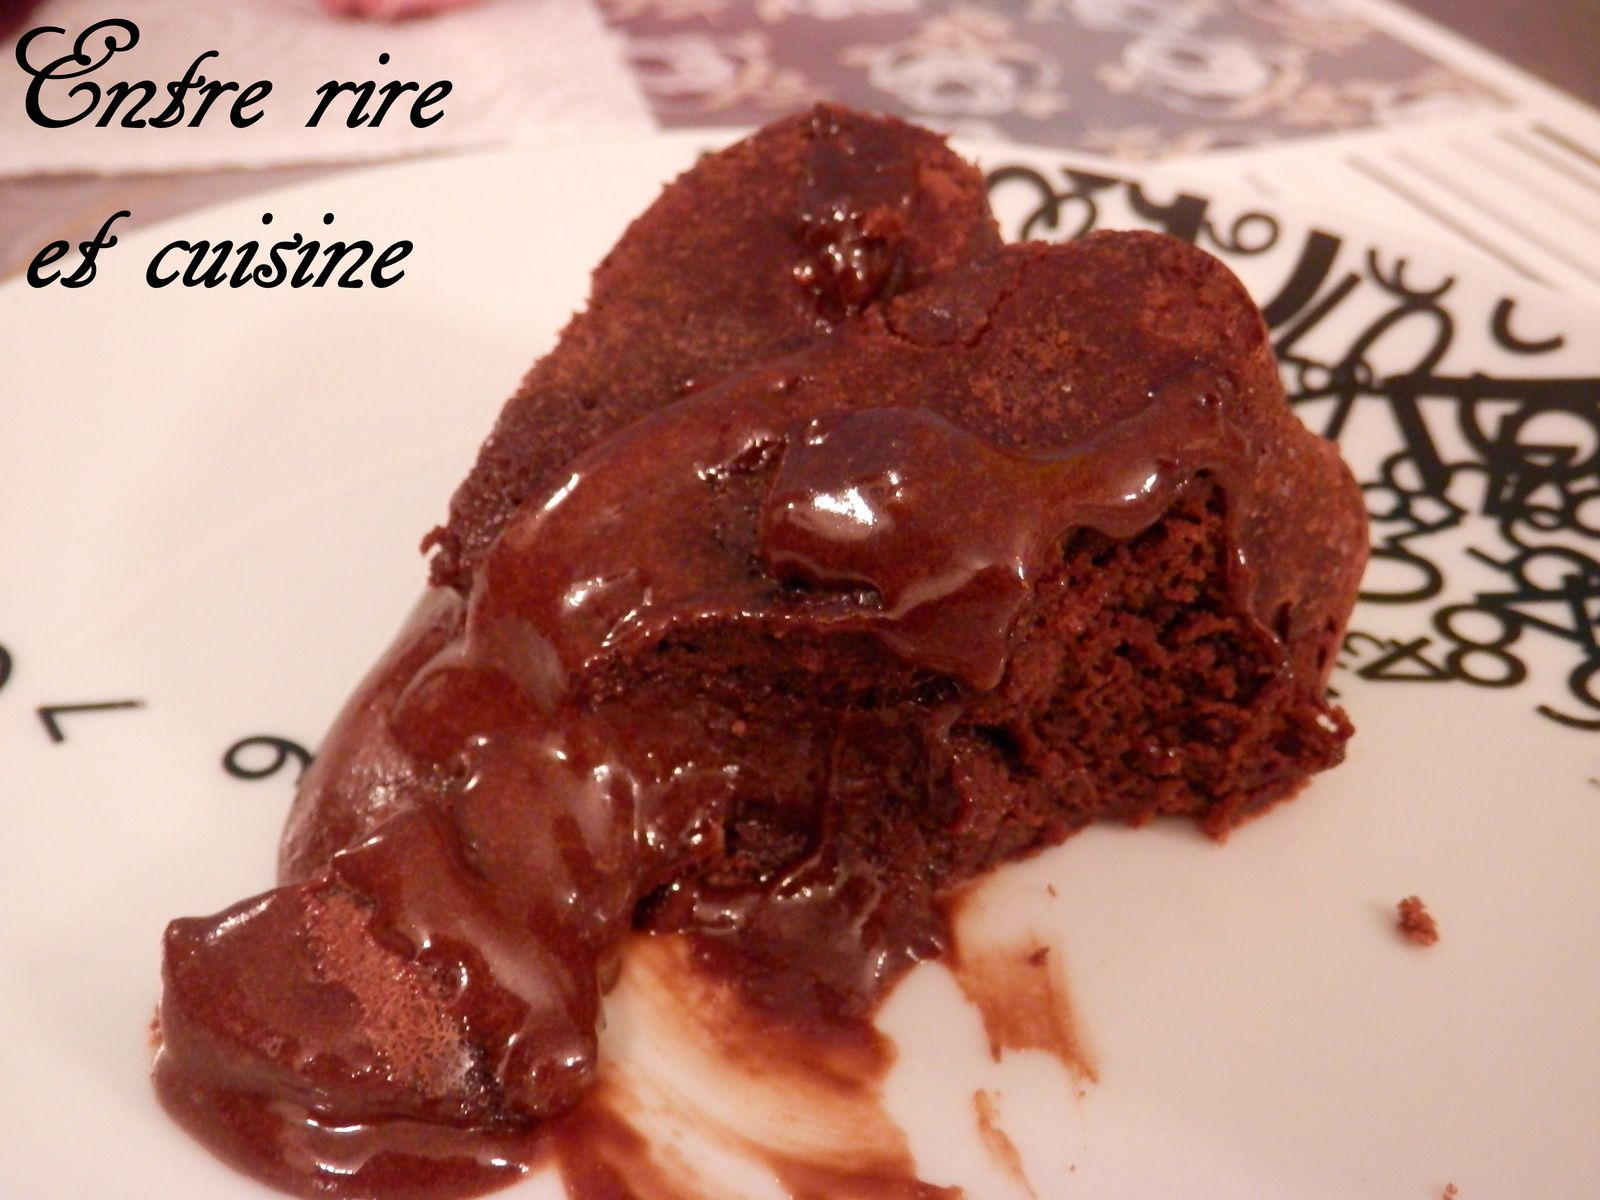 Fondant au Chocolat qui coule, tout simple...mais tellement bon !